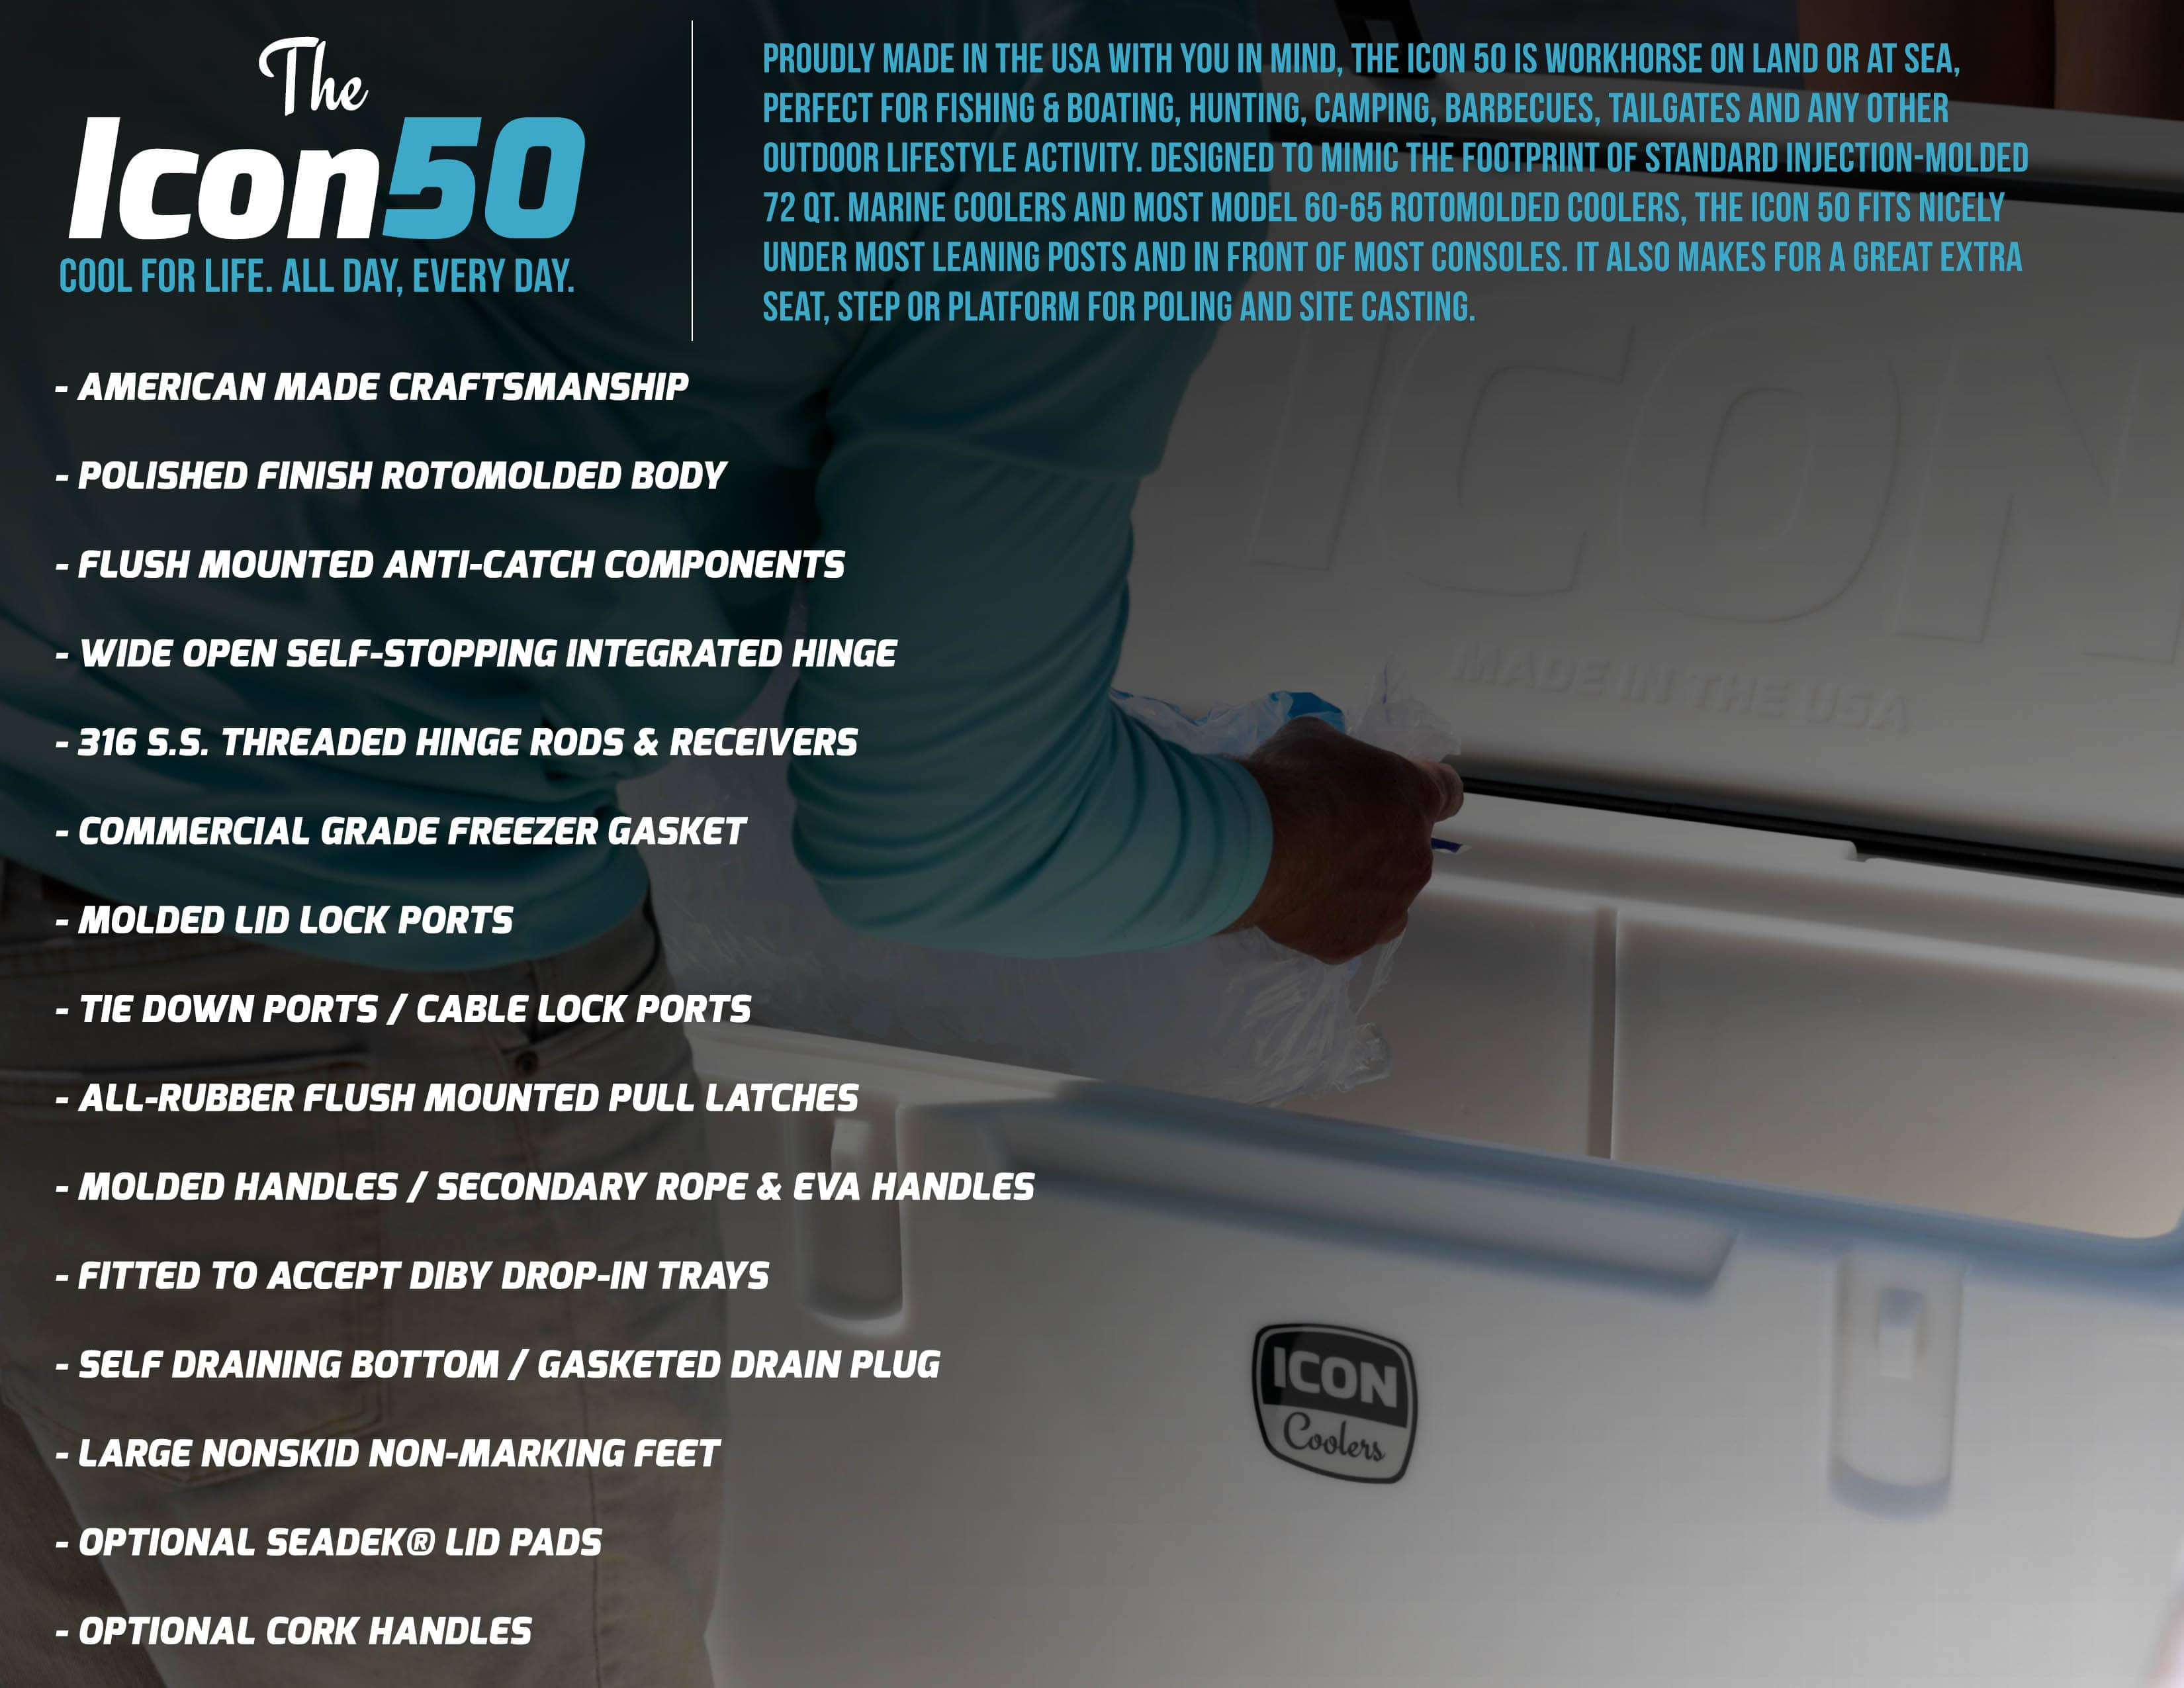 product-page-hard-coolers-50-features-3-min.jpg